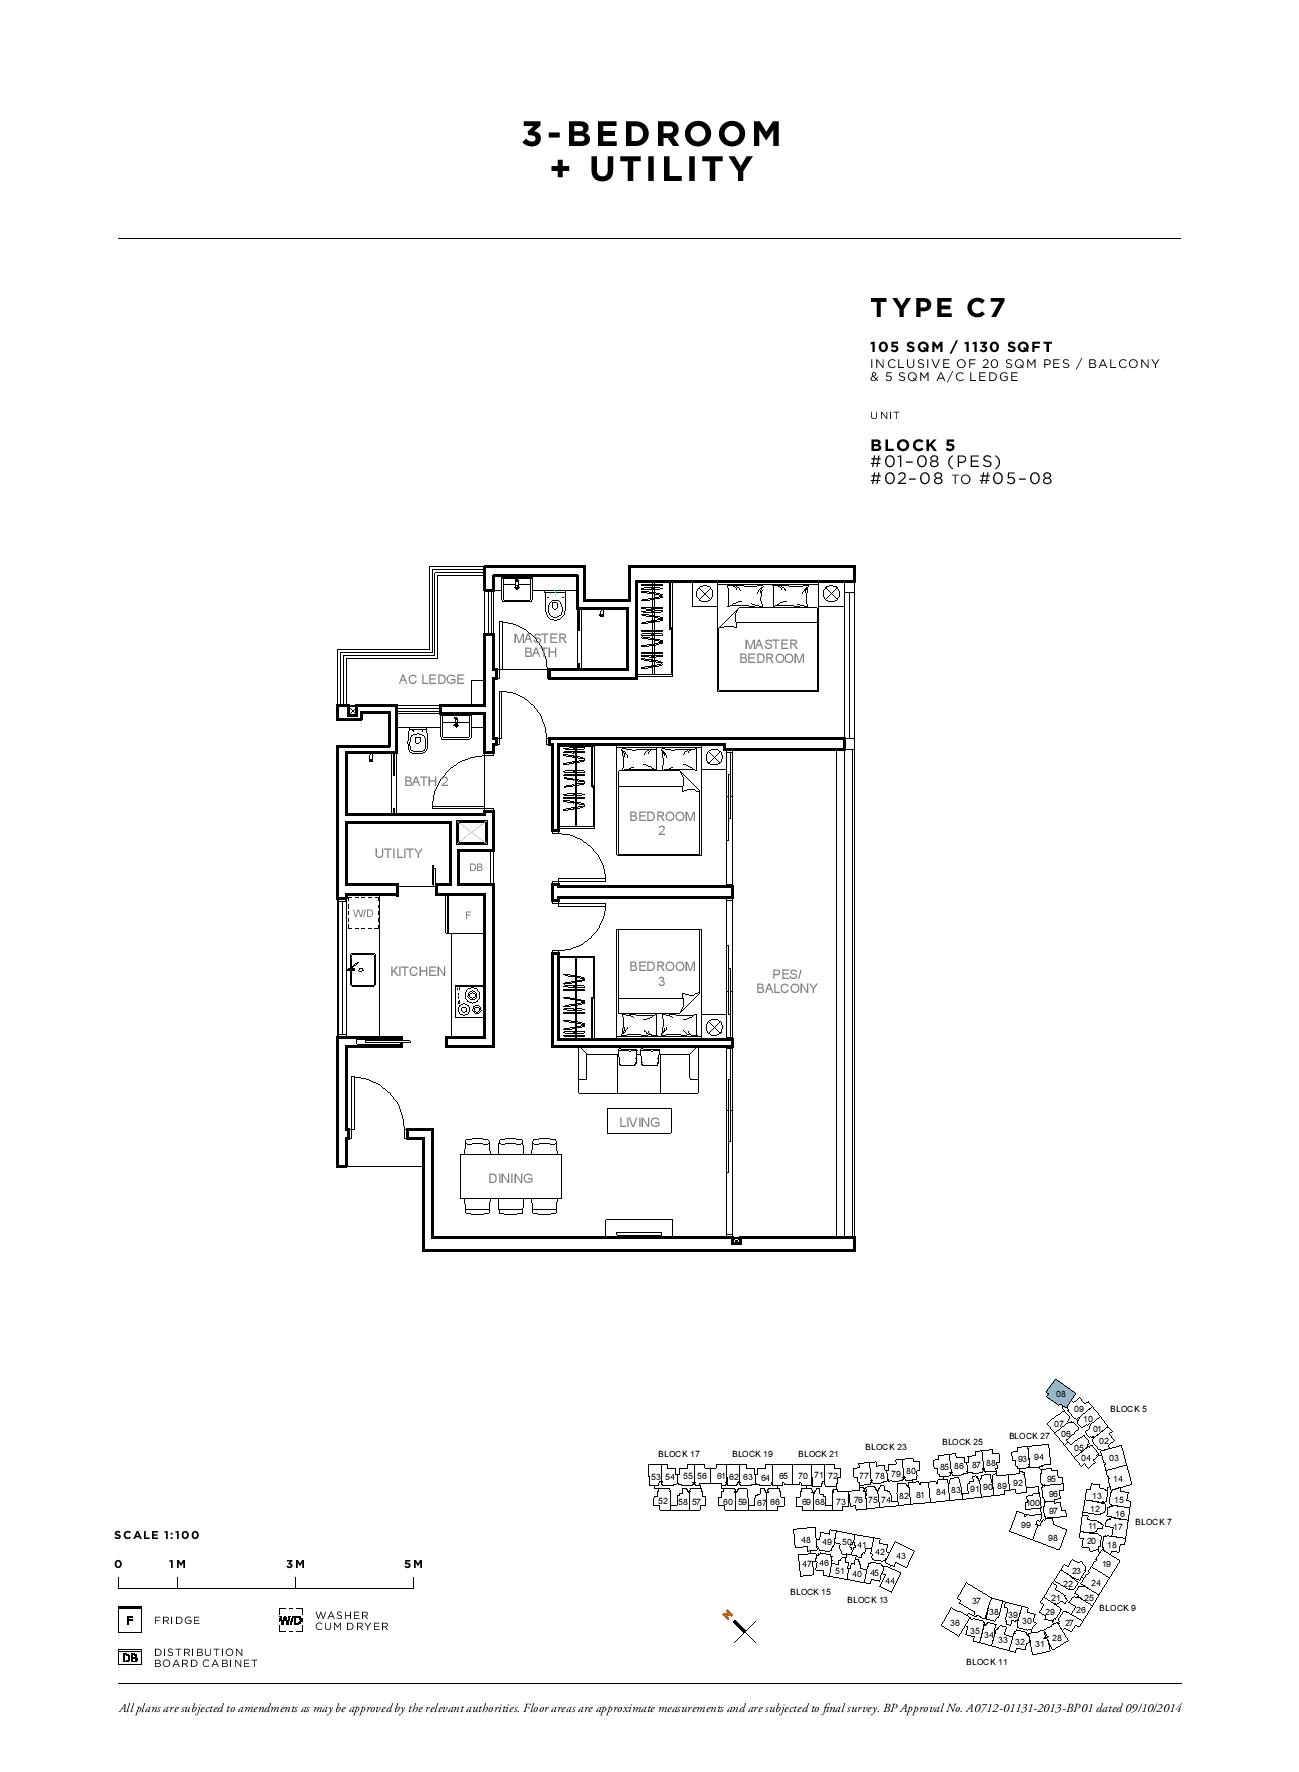 Sophia Hills 3 Bedroom + Utility Type C7 Floor Plans